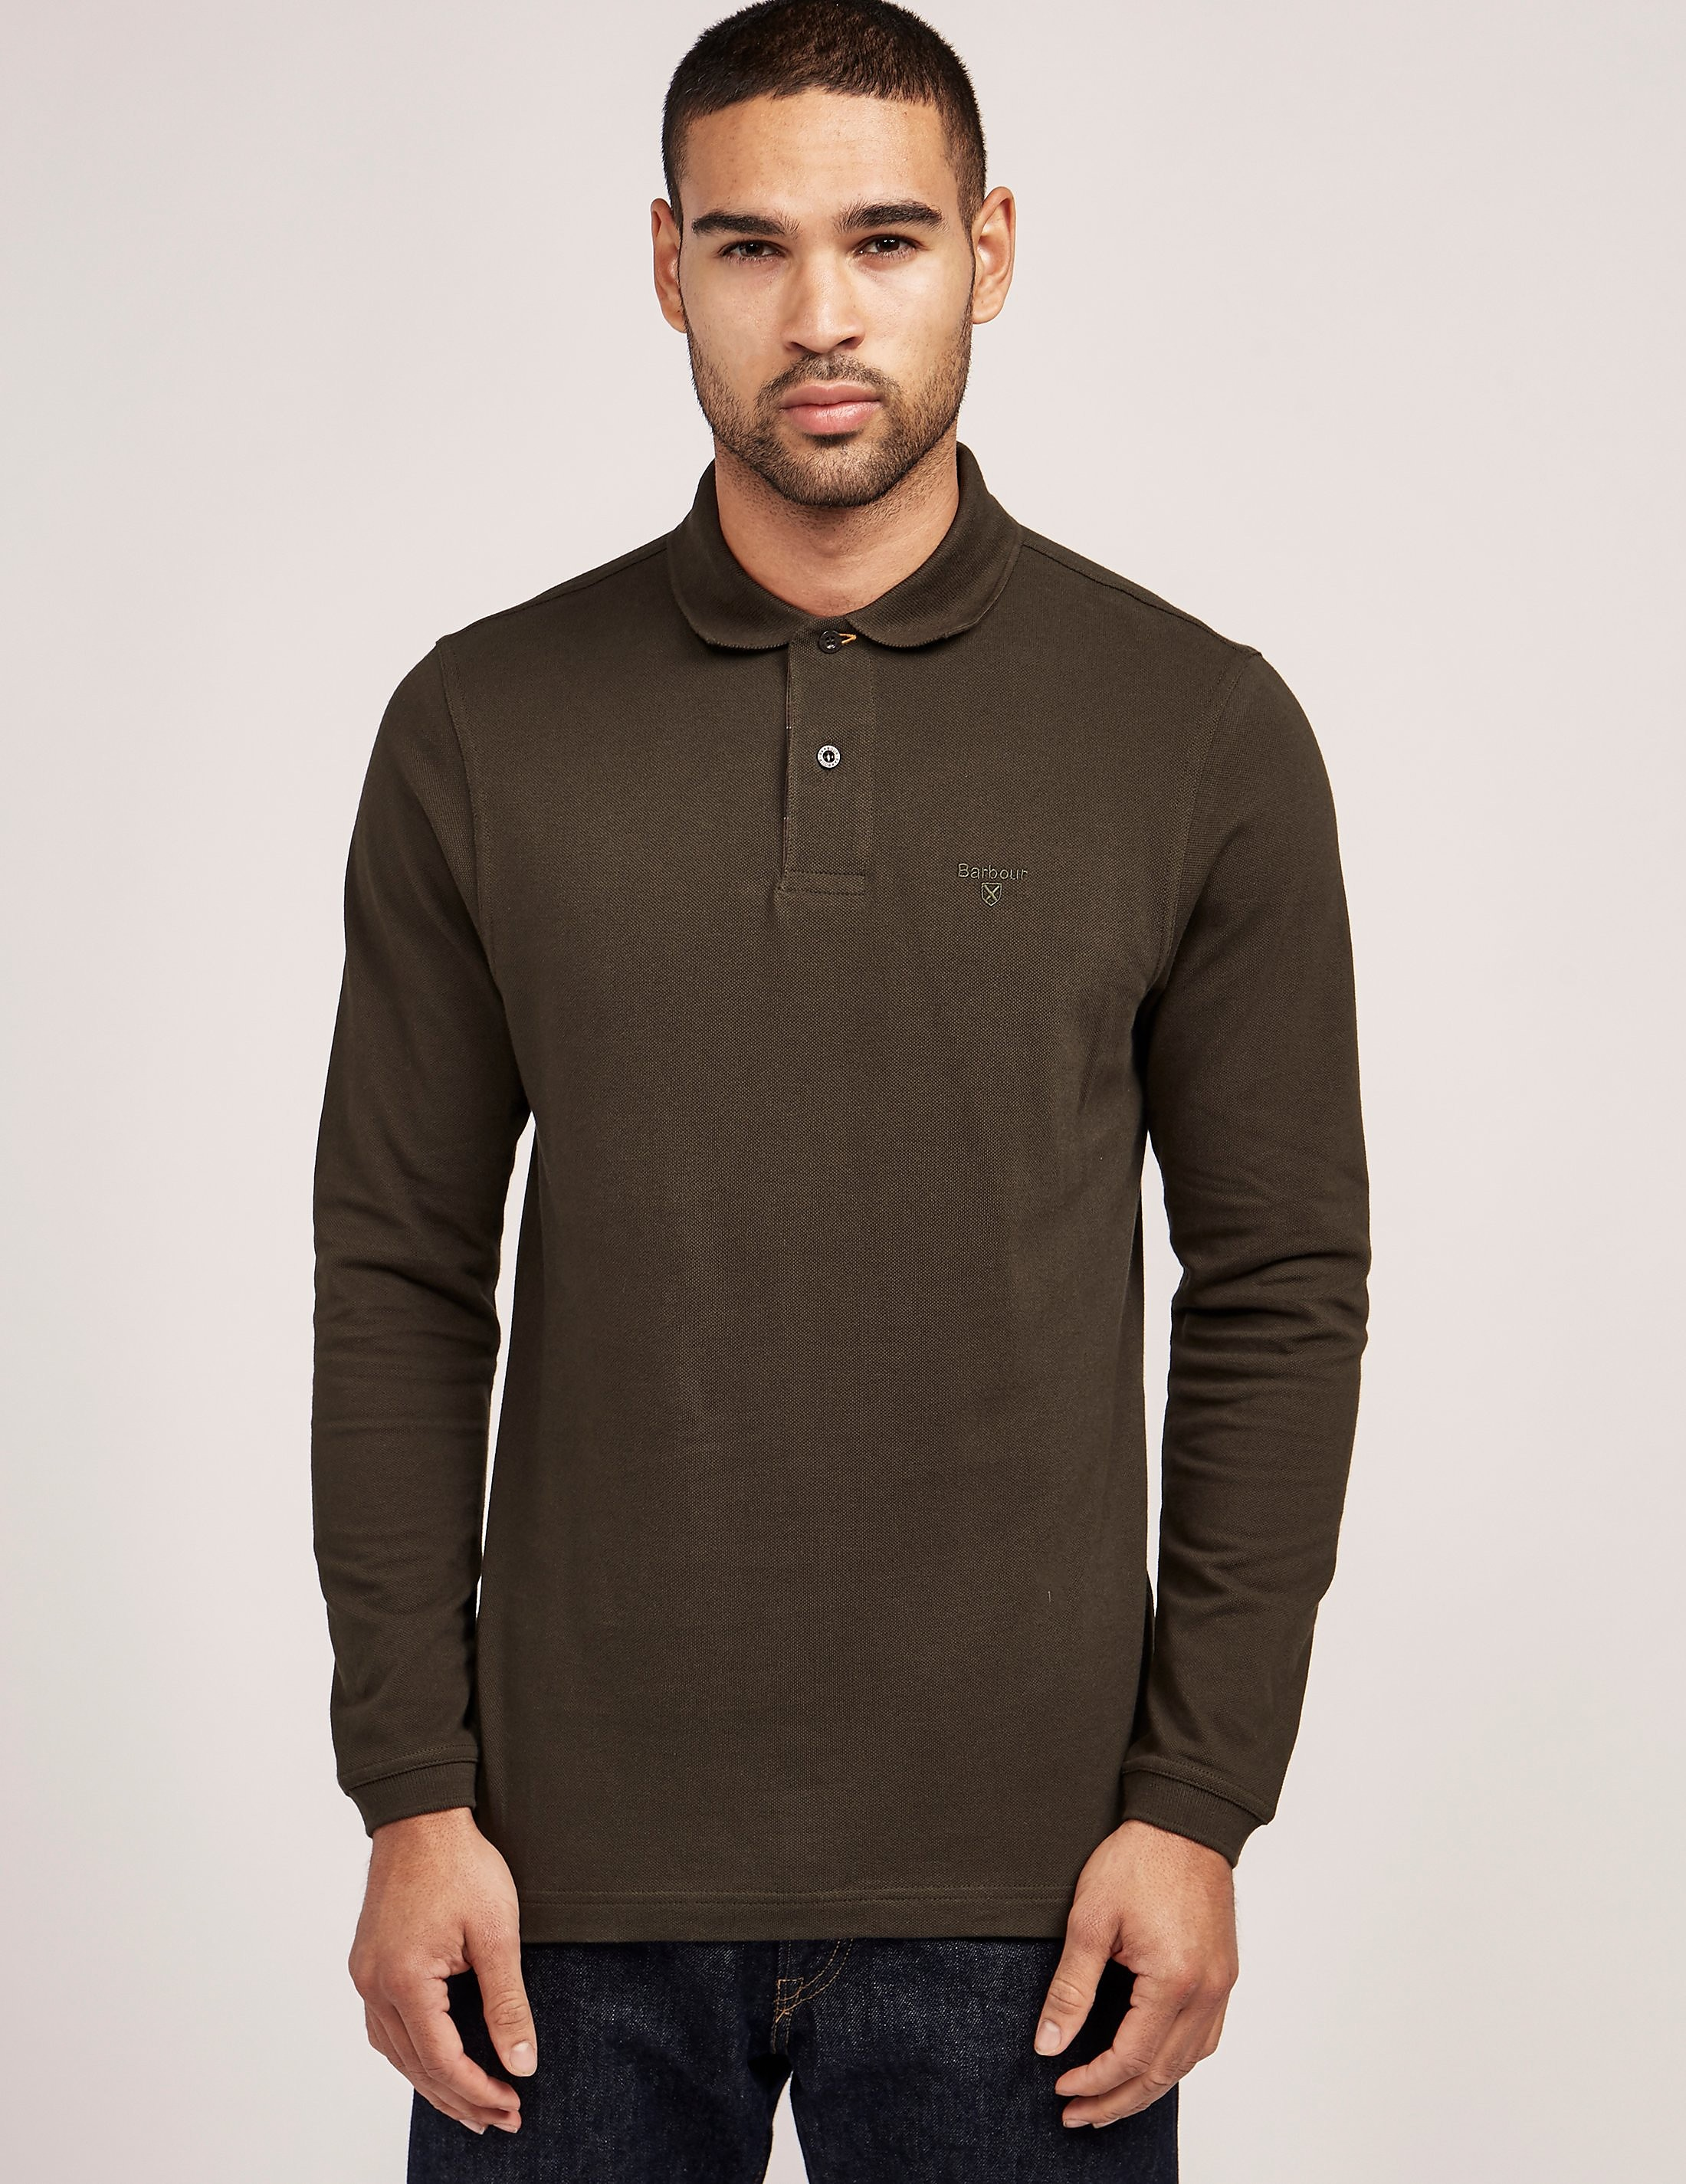 Barbour Long Sleeve Polo Shirt